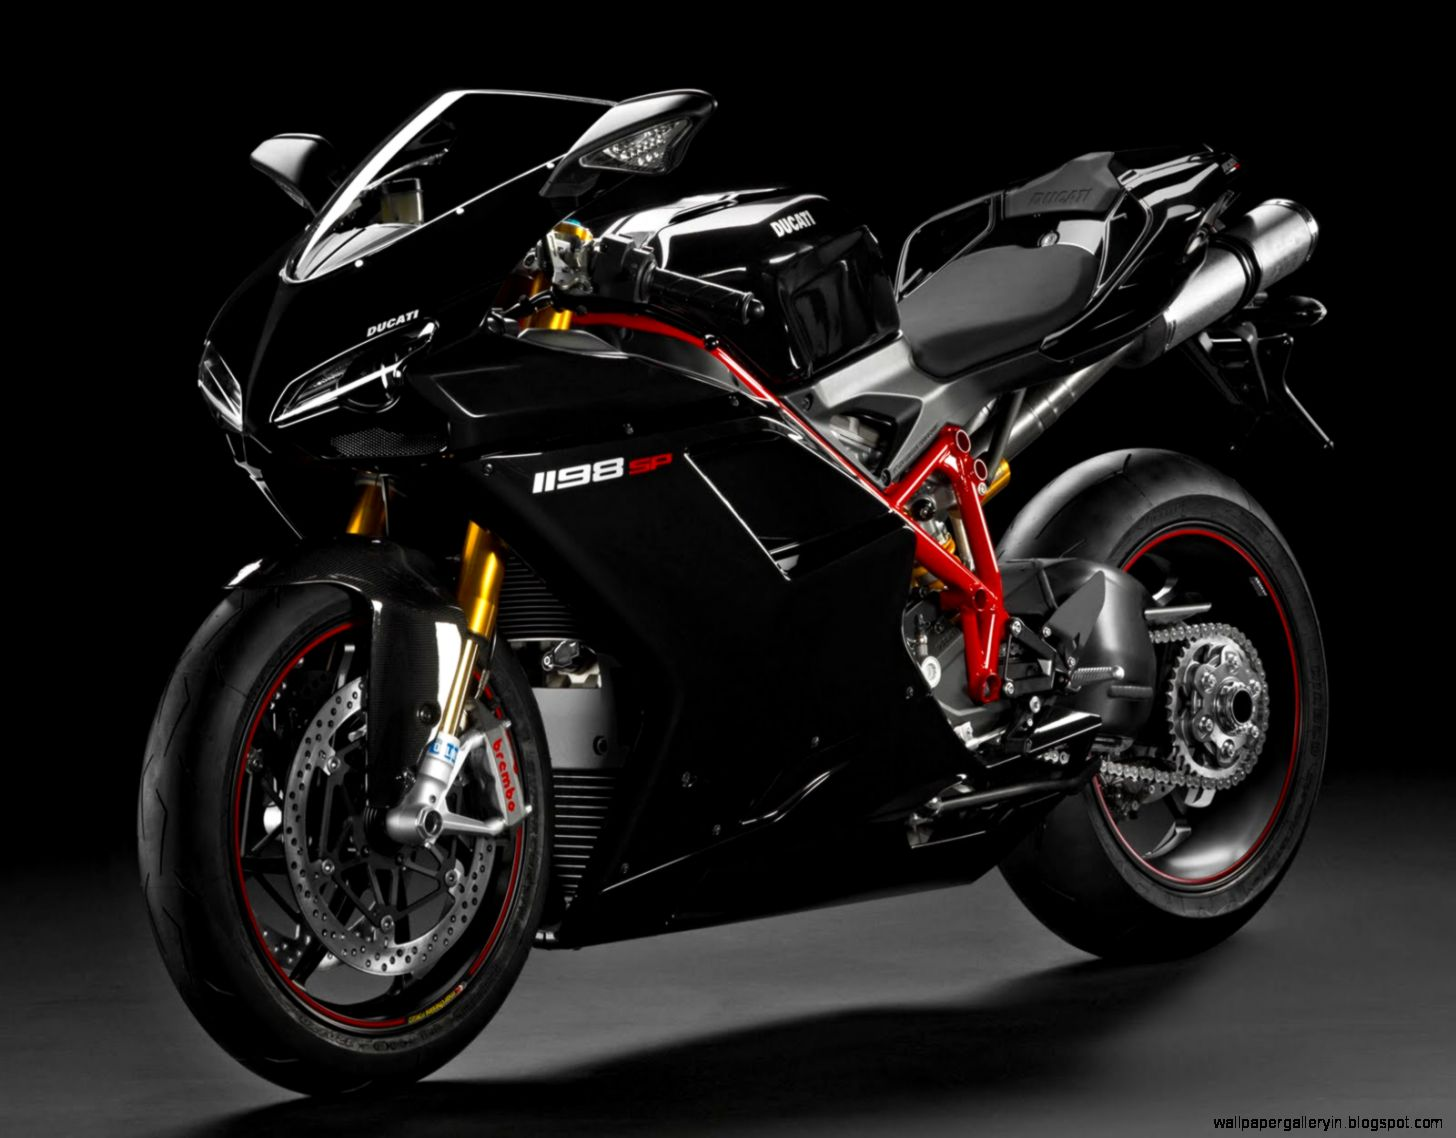 Superbike Ducati 1198SP Black Wallpaper HD 13791 Wallpaper